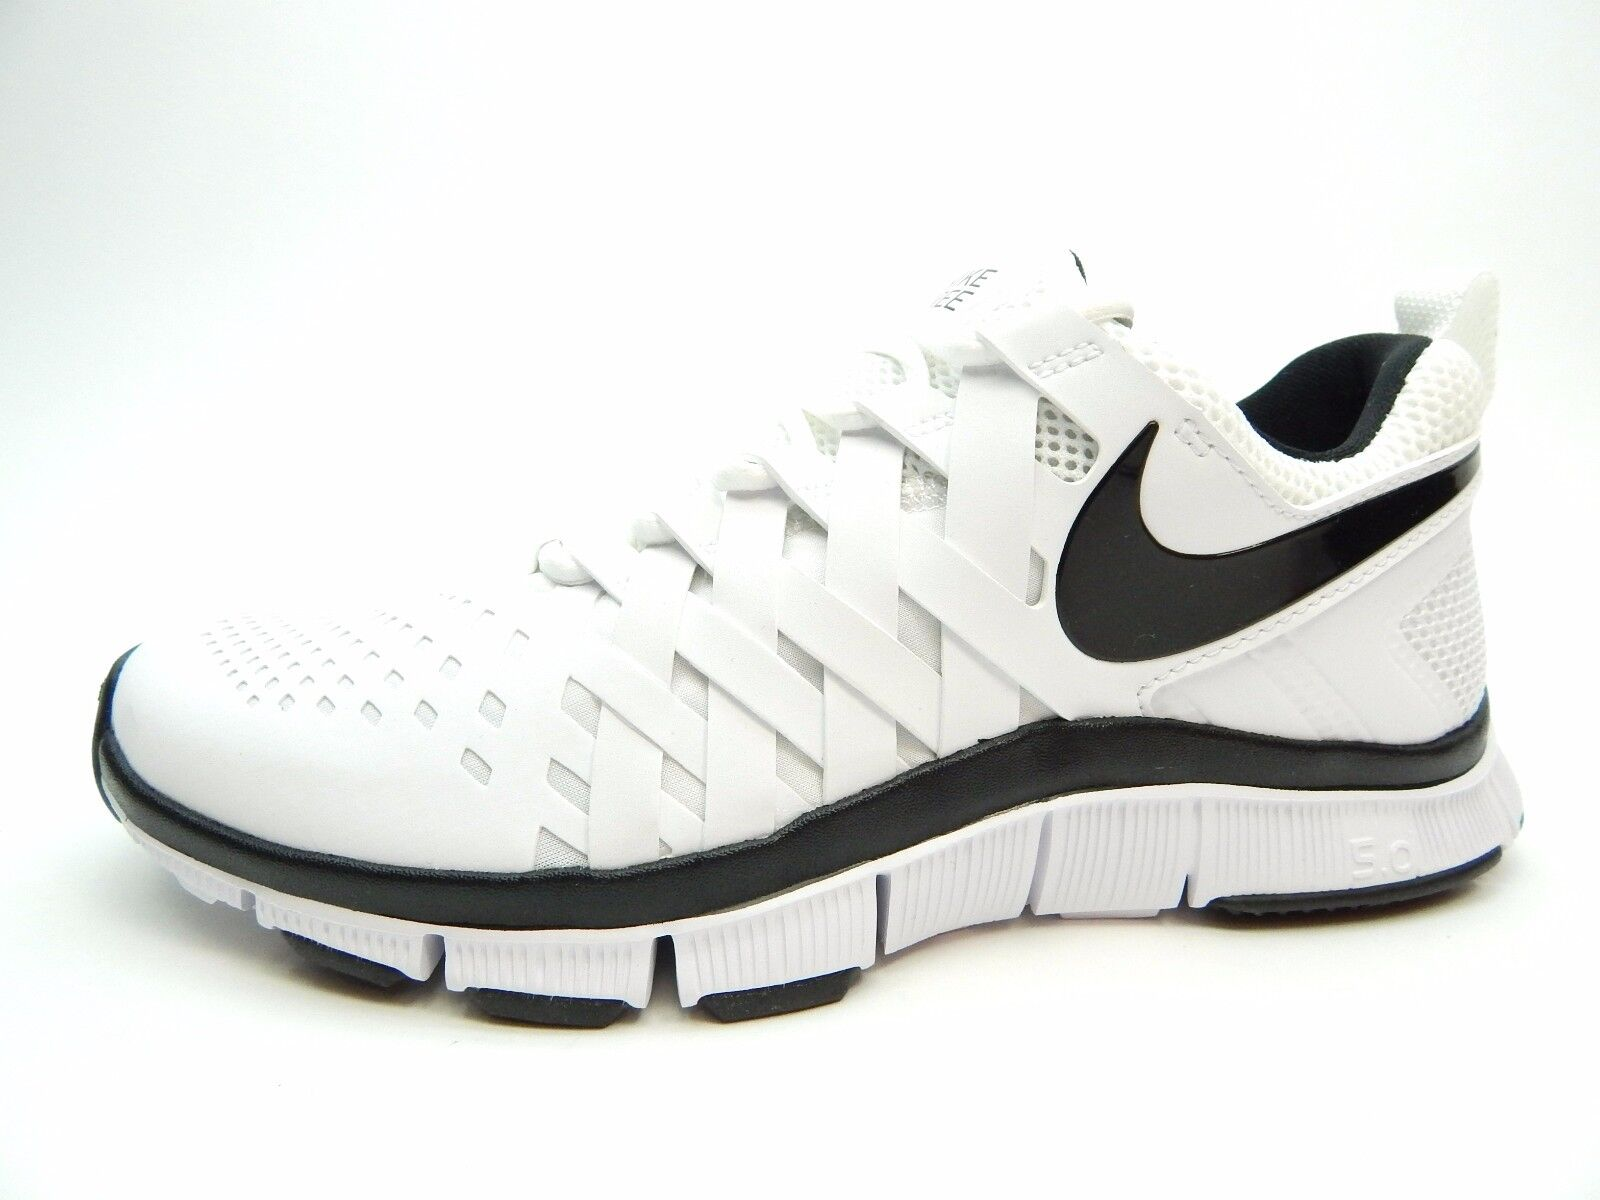 33359e2826fd0 hot sale NIKE FREE TRAINER 5.0 TB 579811 100 WHITE BLACK MEN SHOES SIZE 7.5  TO